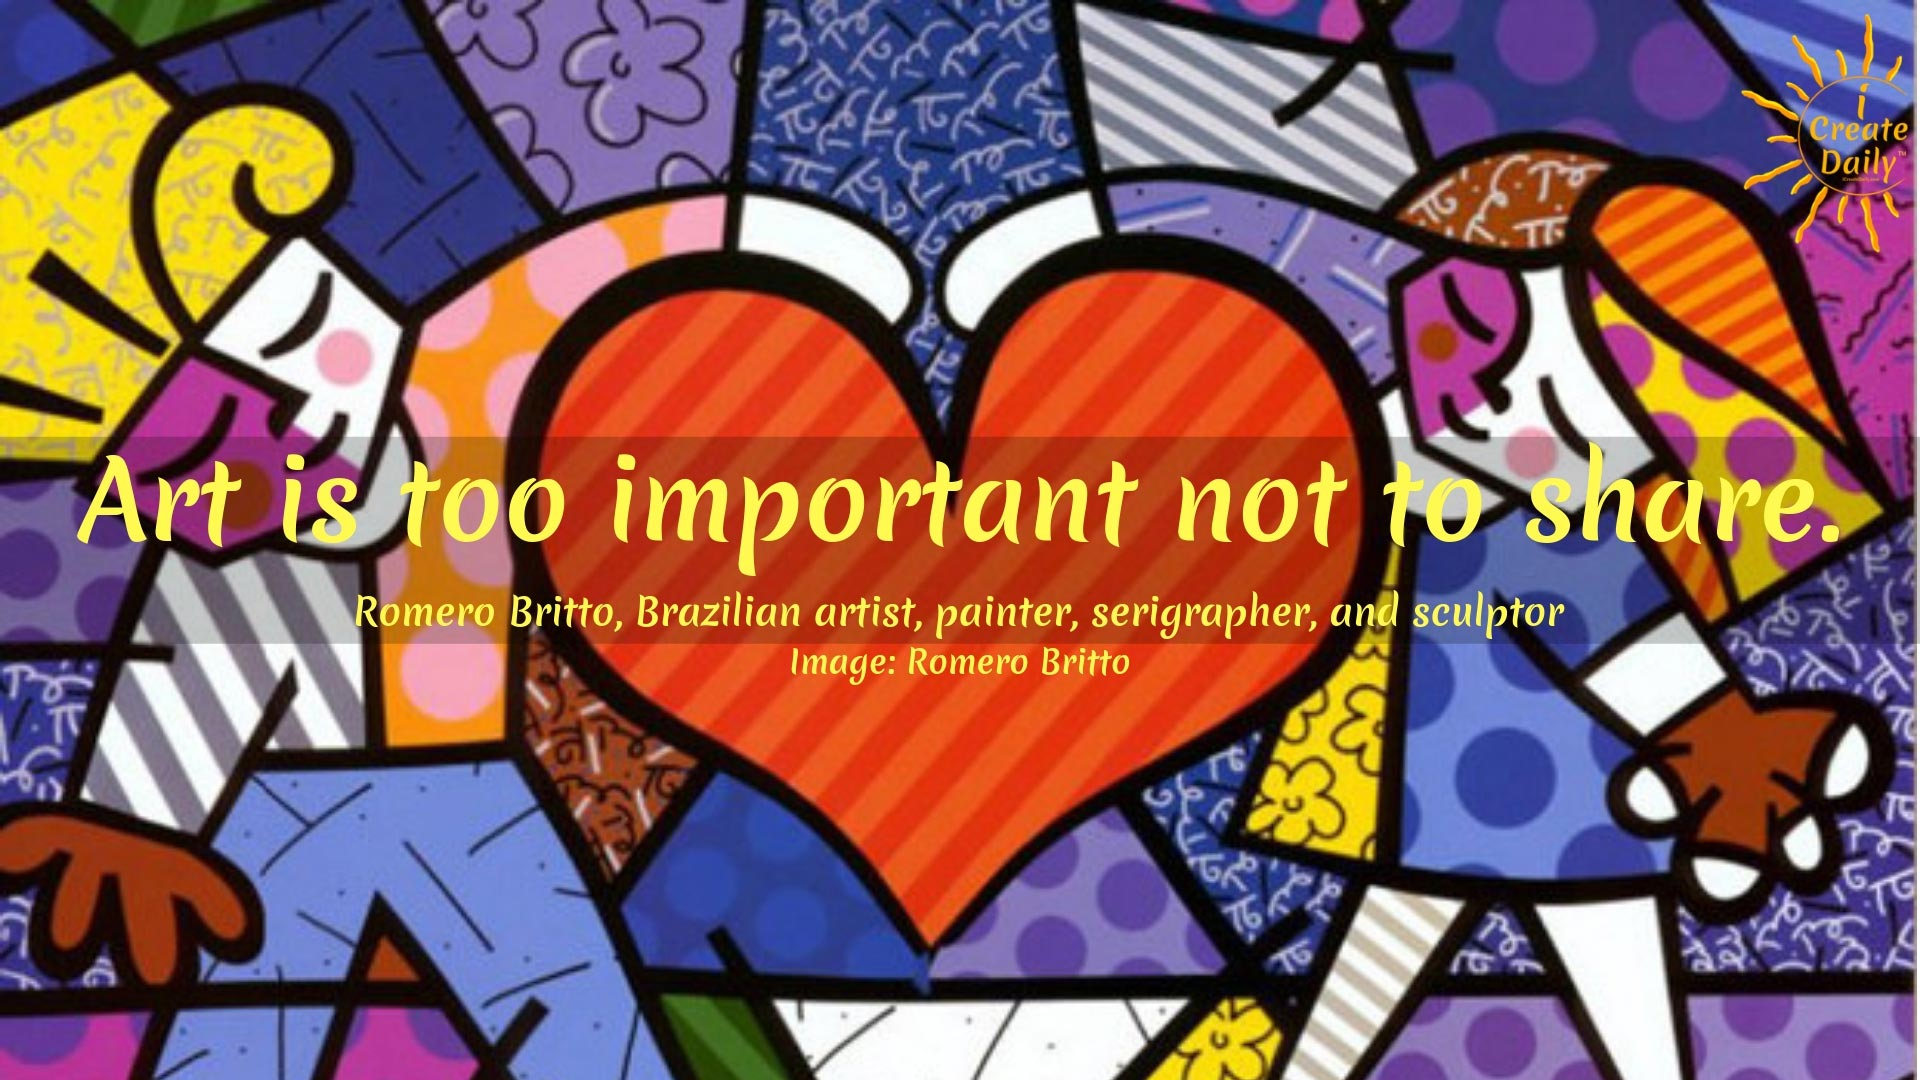 Art is too important not to share. ~Romero Britto, Brazilian artist, painter, serigrapher, and sculptor #ArtQuotes #CreativityQuotes #Purpose #Life #Motivation